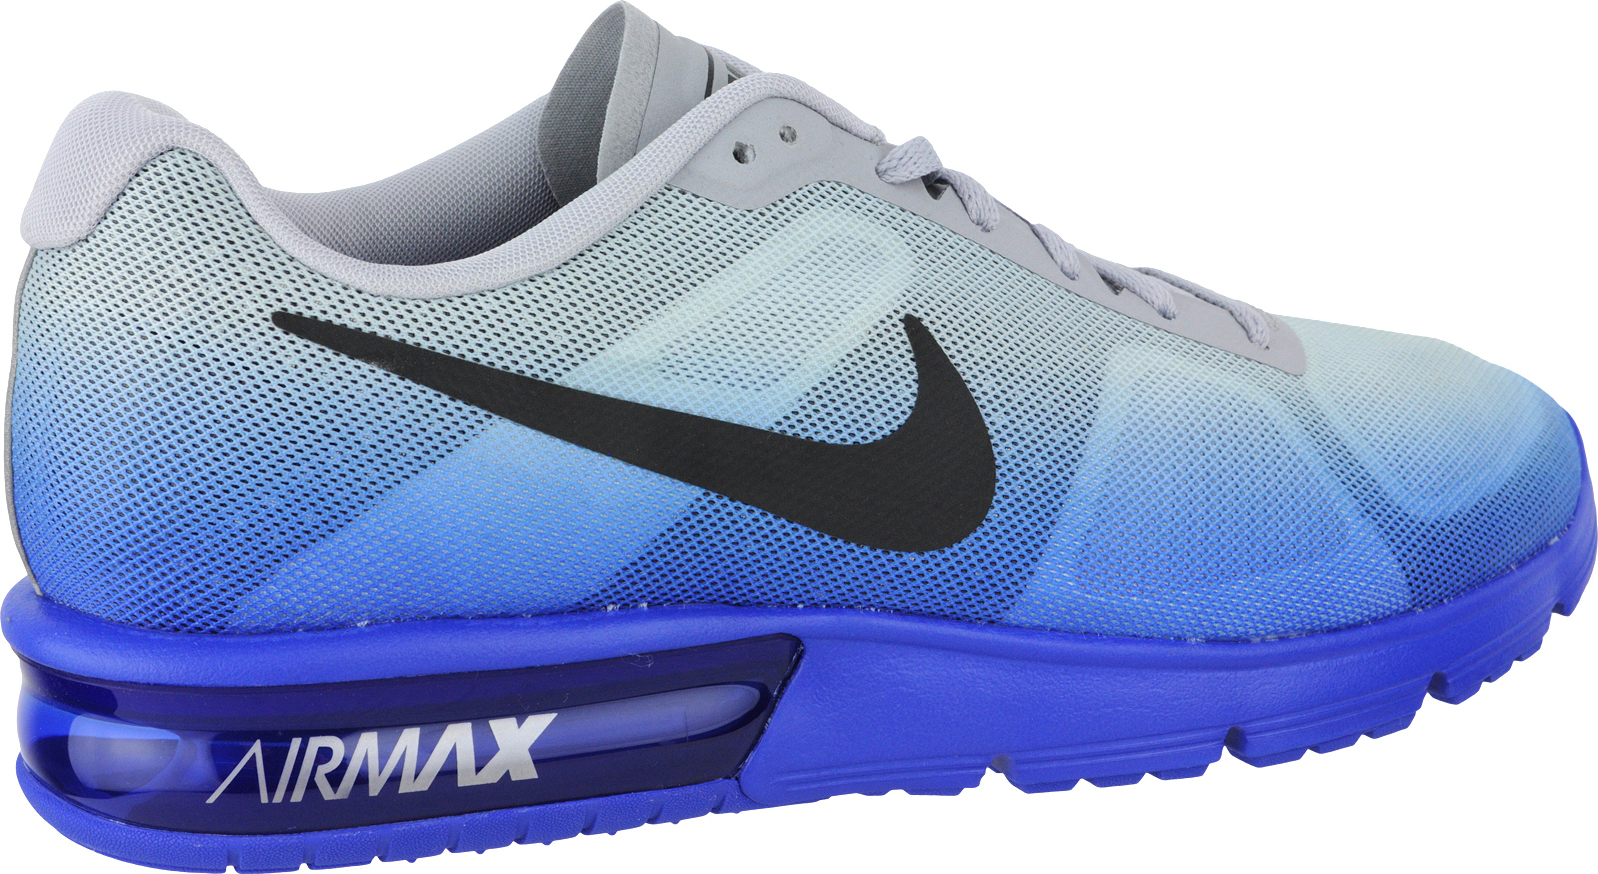 Nike Air Max Sequent 719912-405 - Skroutz.gr 20b06620c4